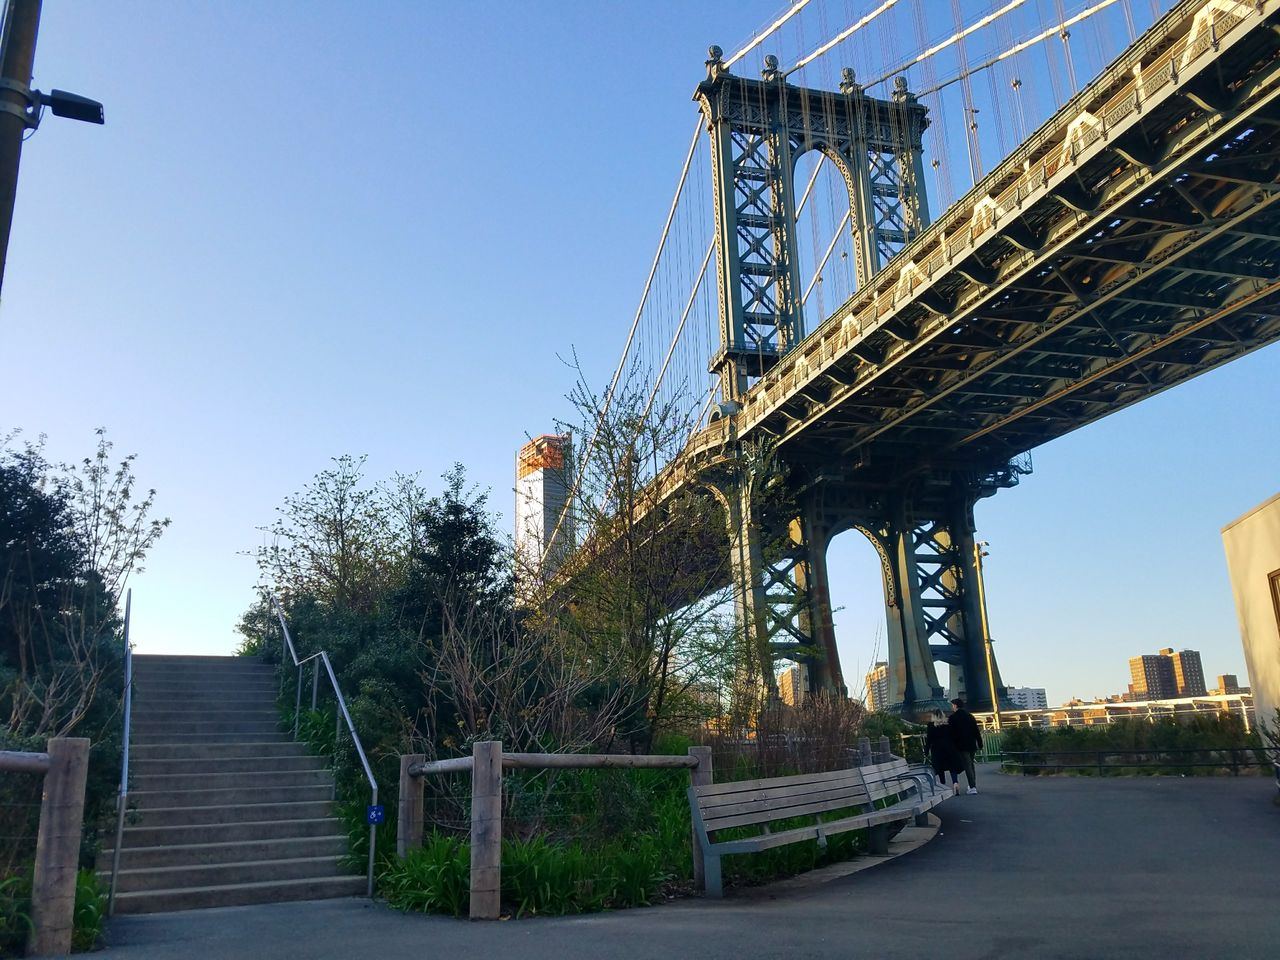 sky, architecture, built structure, connection, transportation, clear sky, bridge, tree, nature, plant, bridge - man made structure, low angle view, day, no people, outdoors, direction, city, the way forward, building exterior